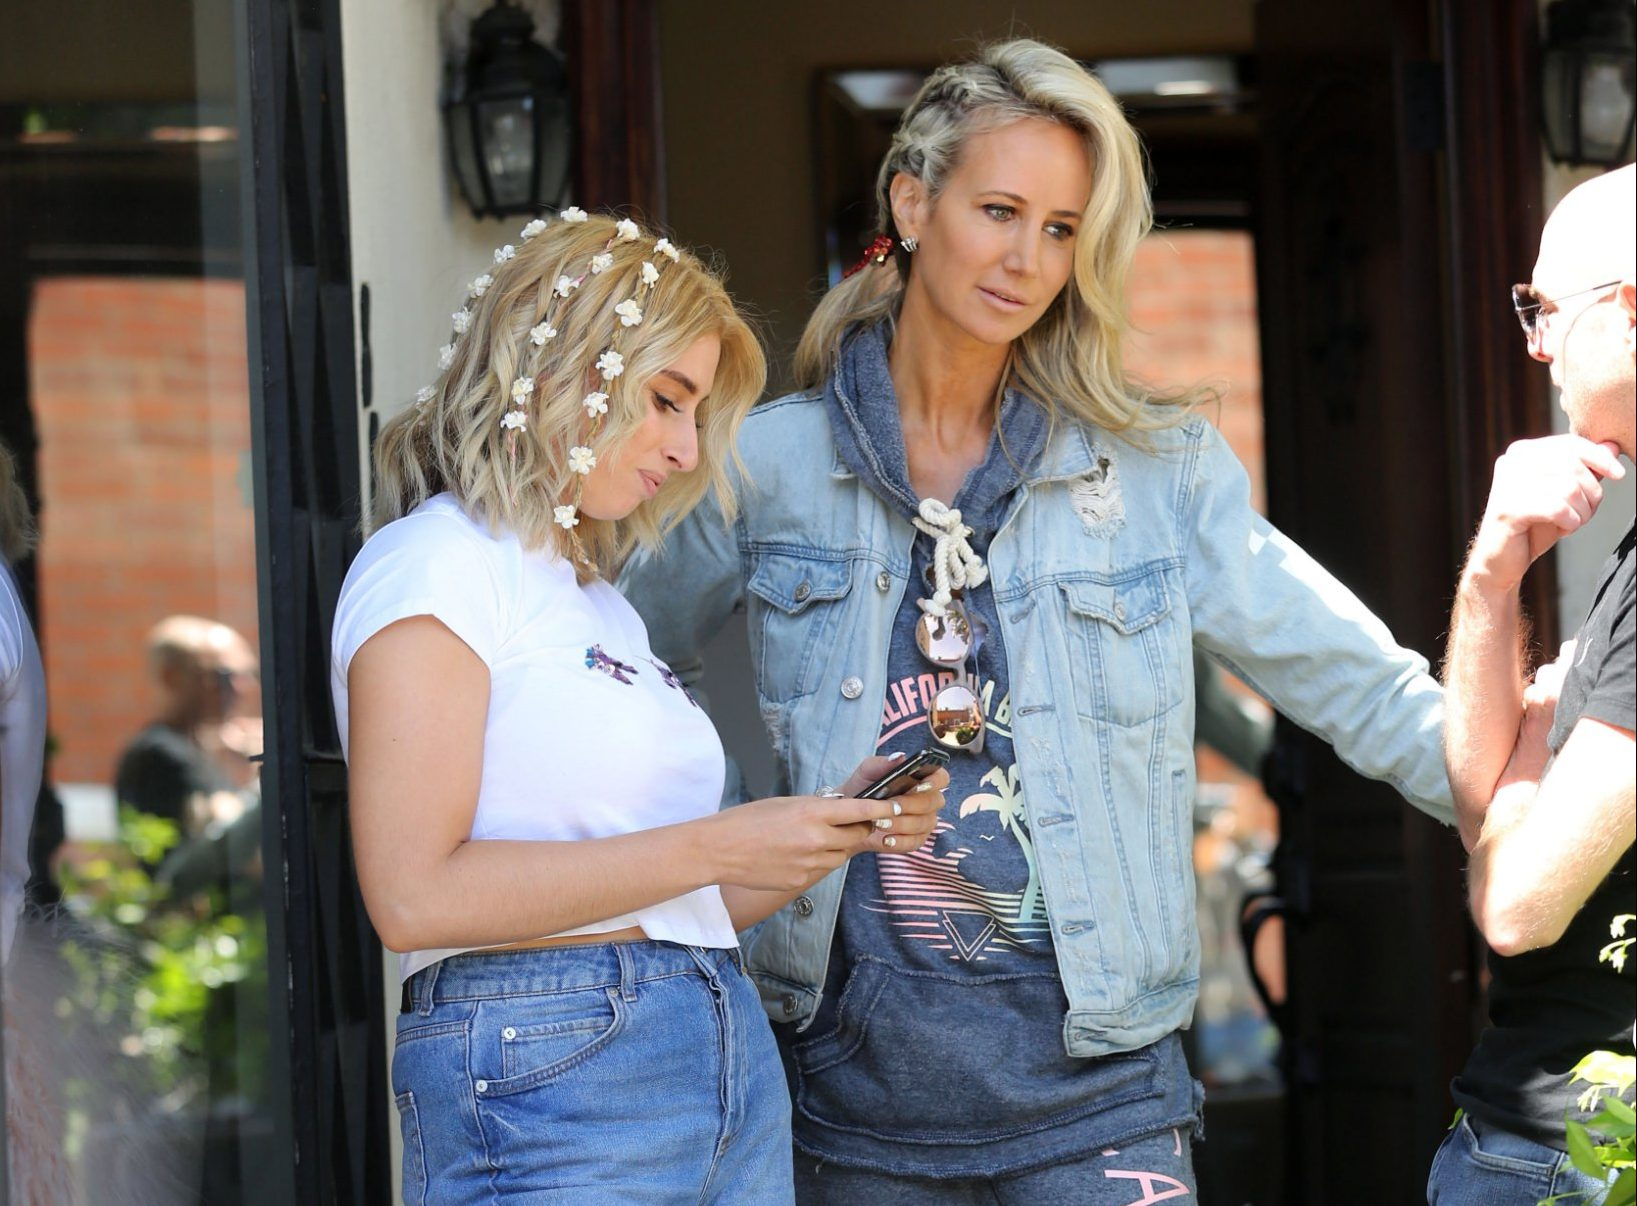 Stacey Solomon goes all flower power as she attends Coachella with Lady Victoria Hervey